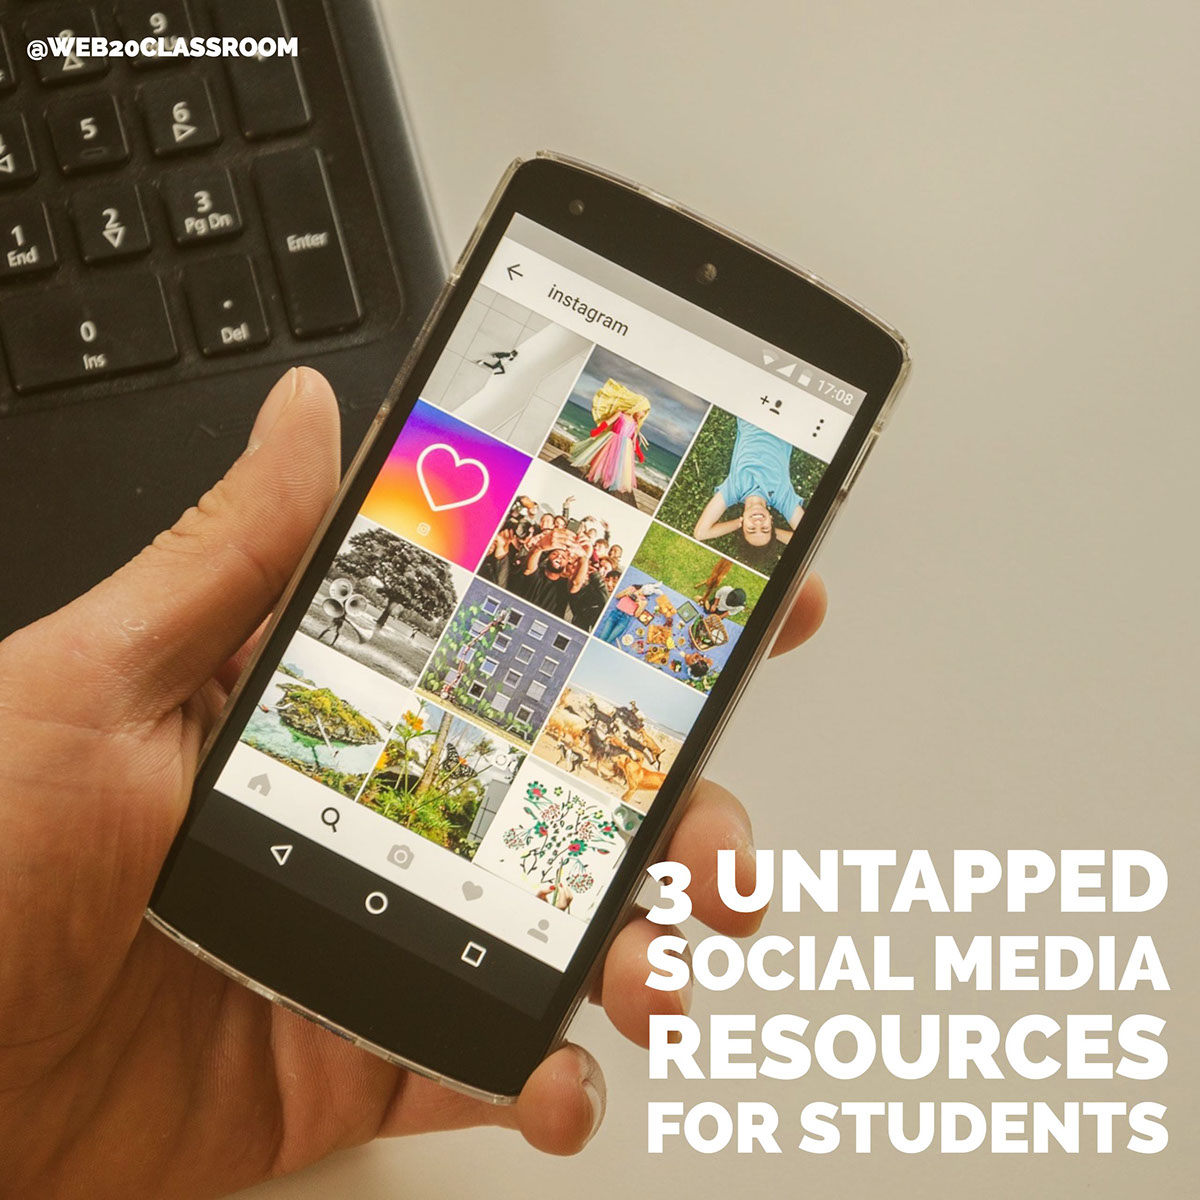 3 Untapped Social Media Resources For Students